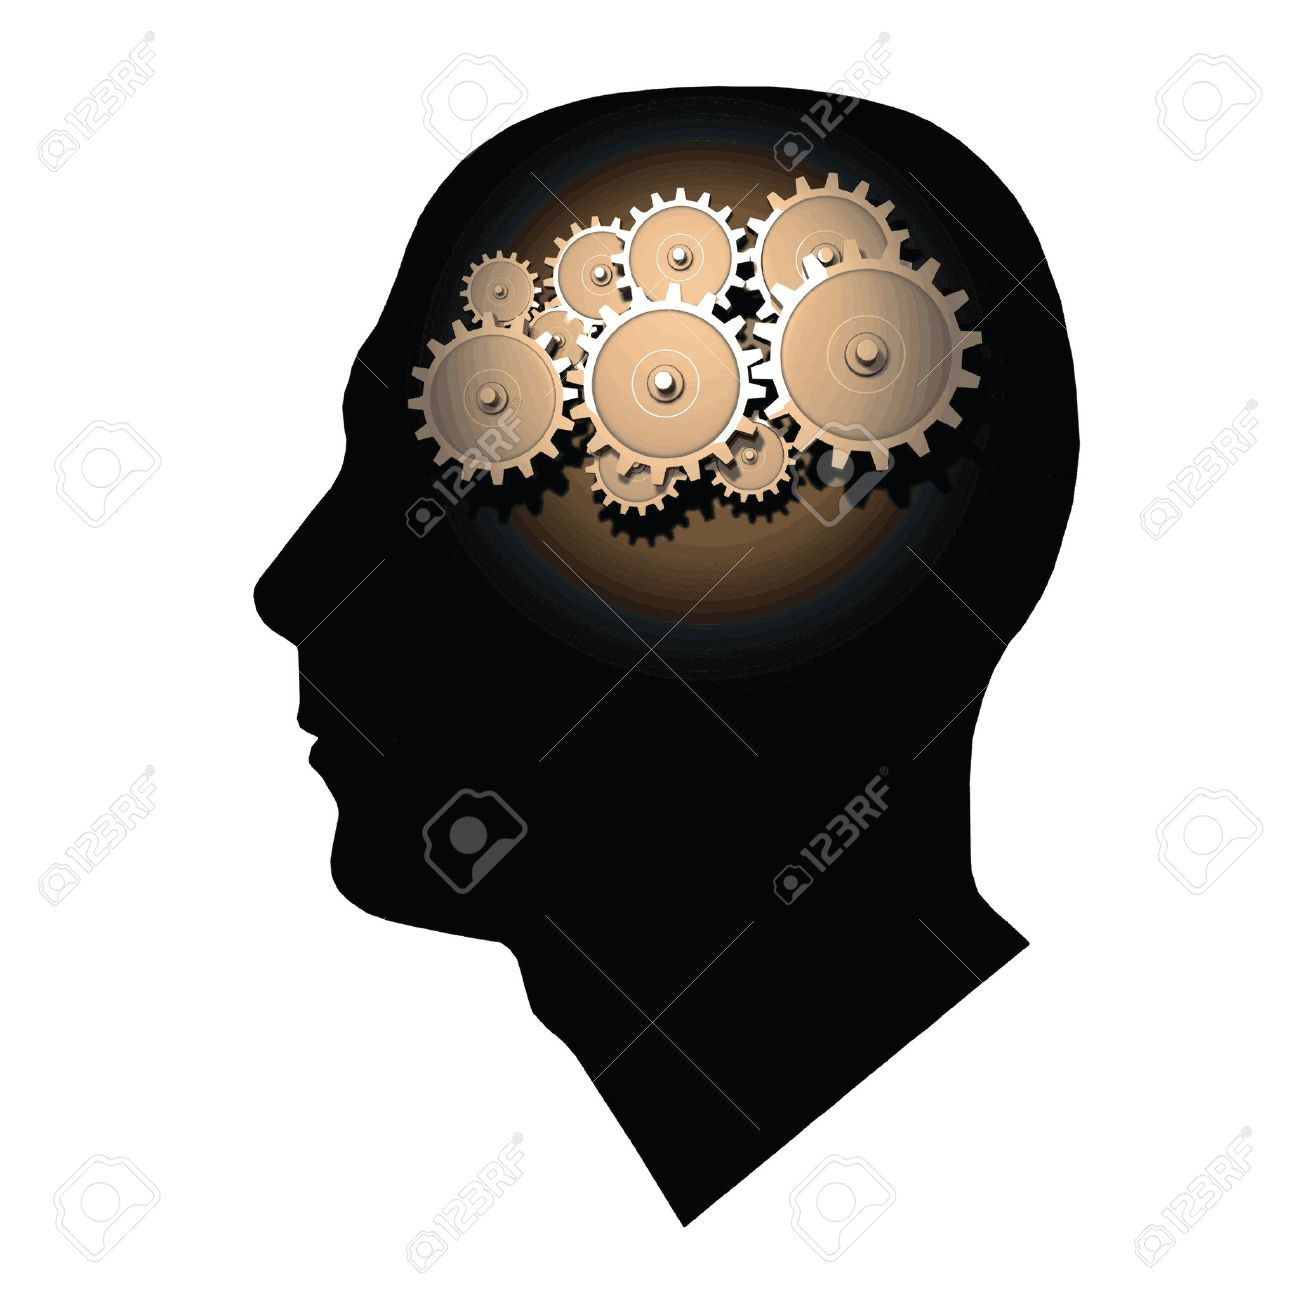 Image of gears inside of a man's head isolated on a white background. - 9717572